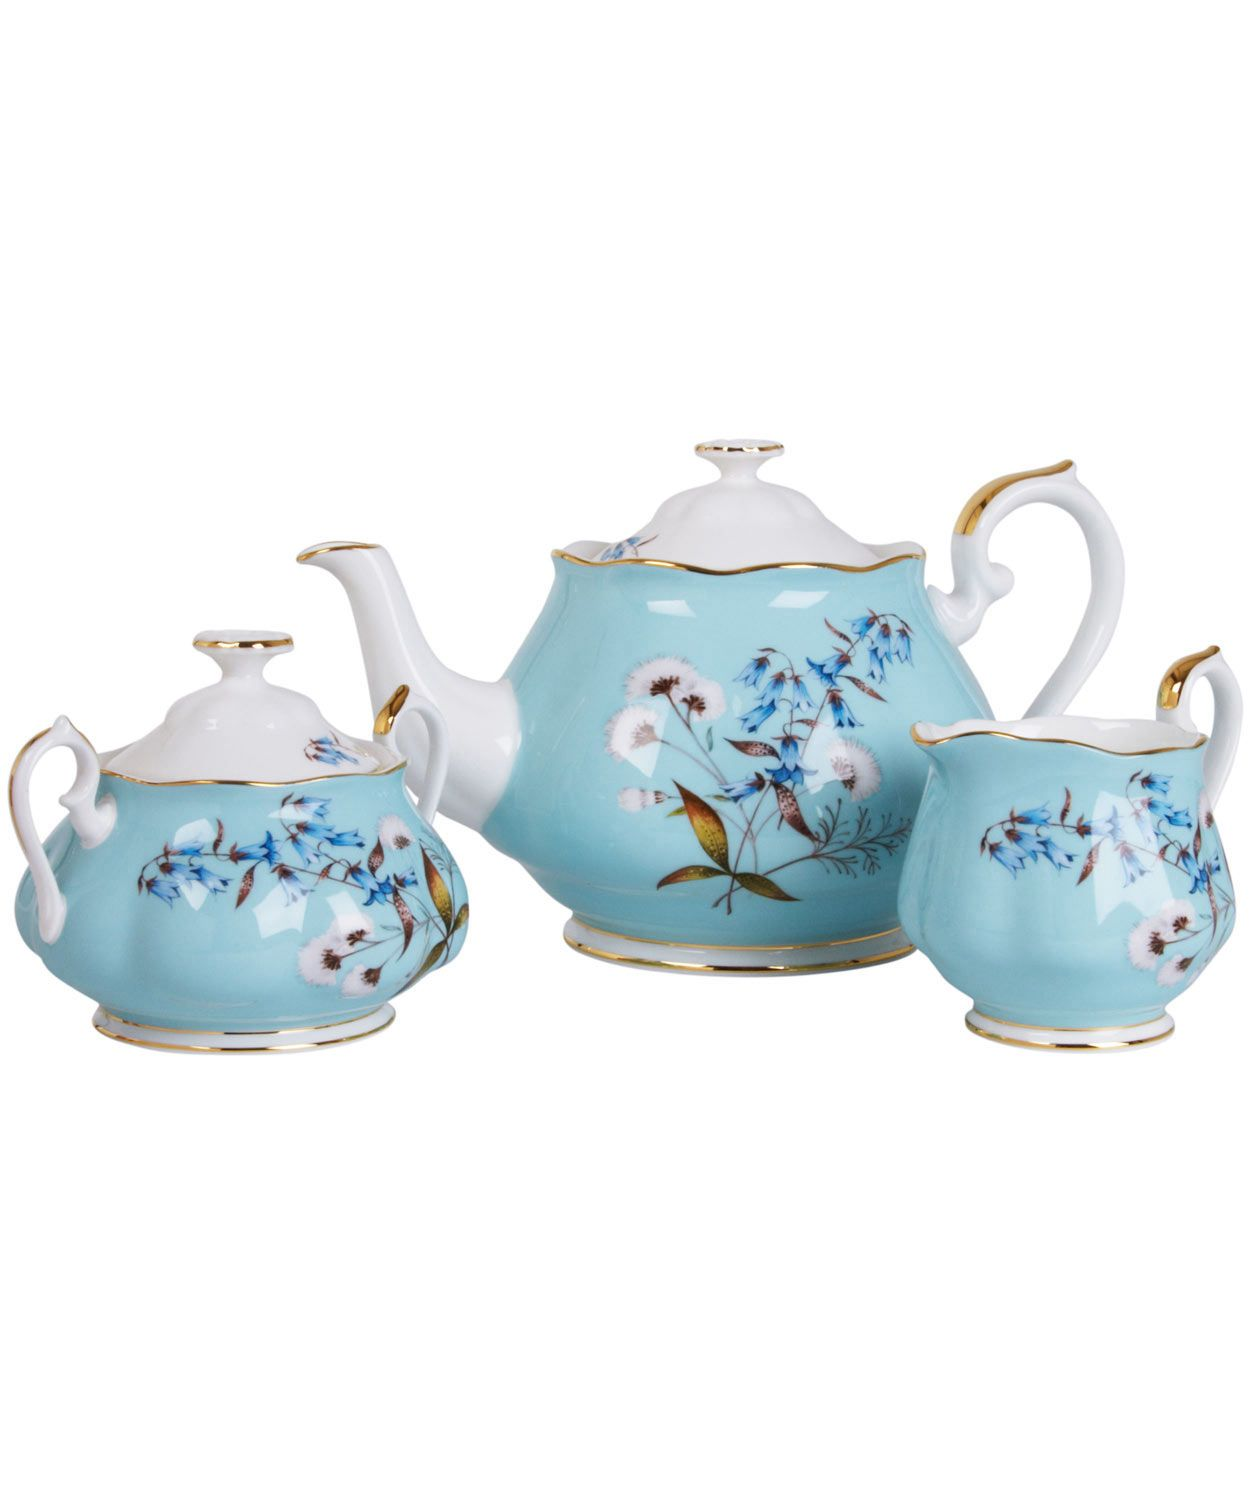 Teekannen Set 1950 Festival Three Piece Tea Set Royal Albert Shop More From